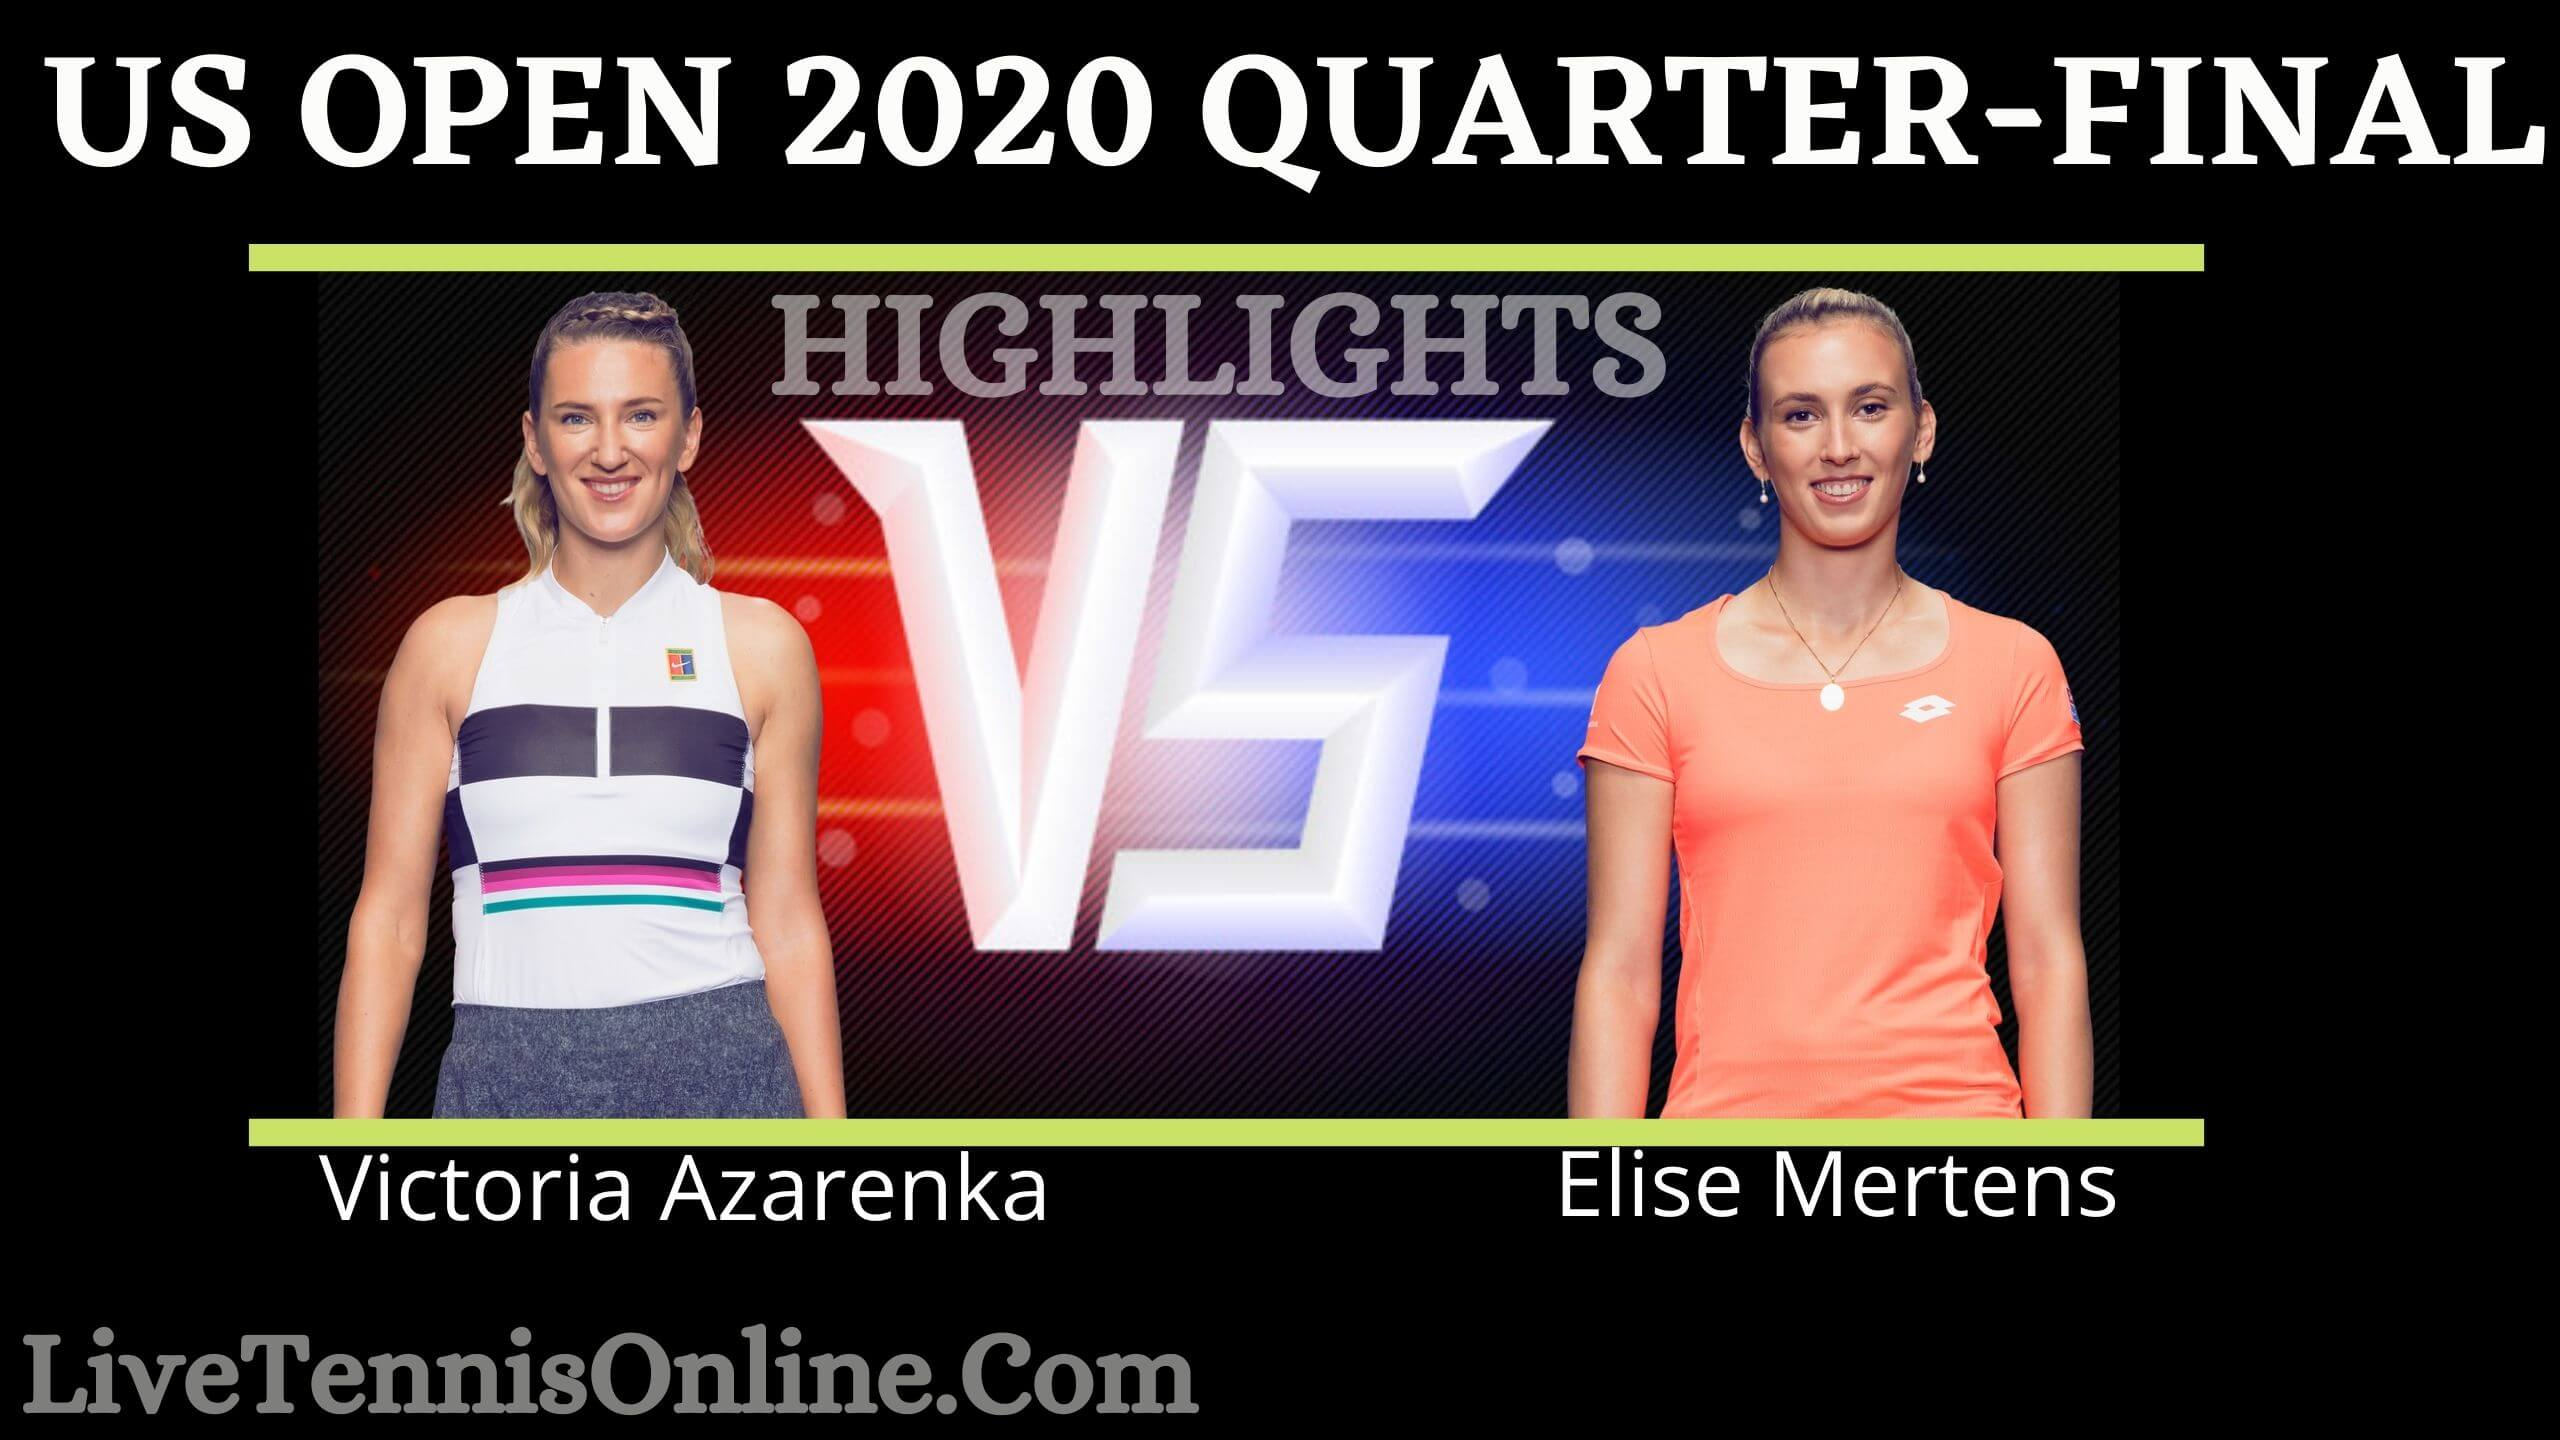 Azarenka Vs Mertens US Open 2020 QF Highlights